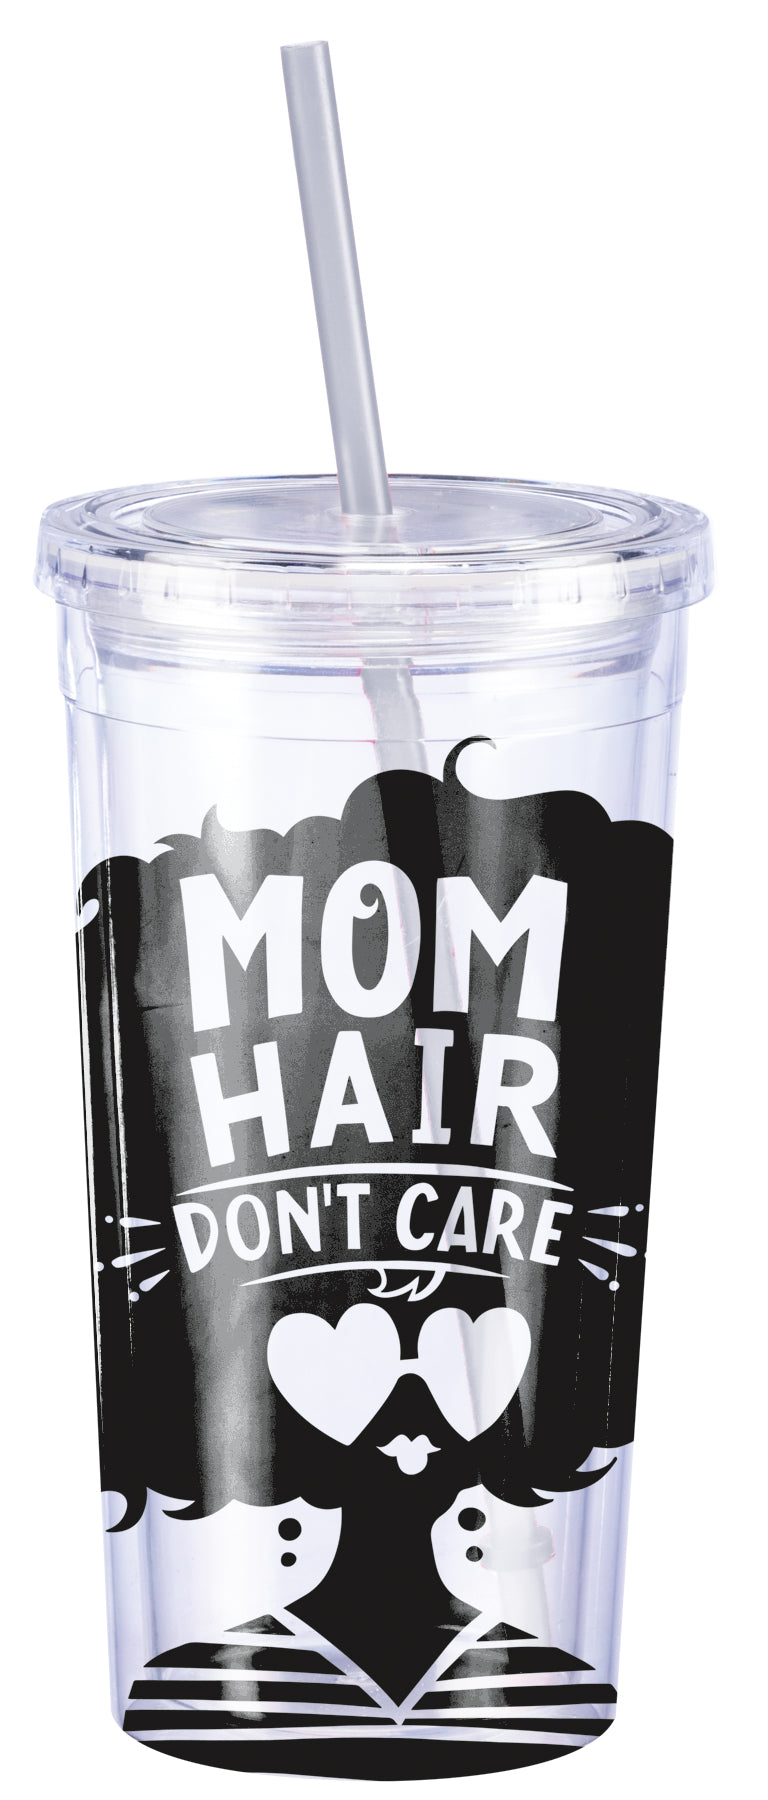 Mom Hair Don't Care Cup